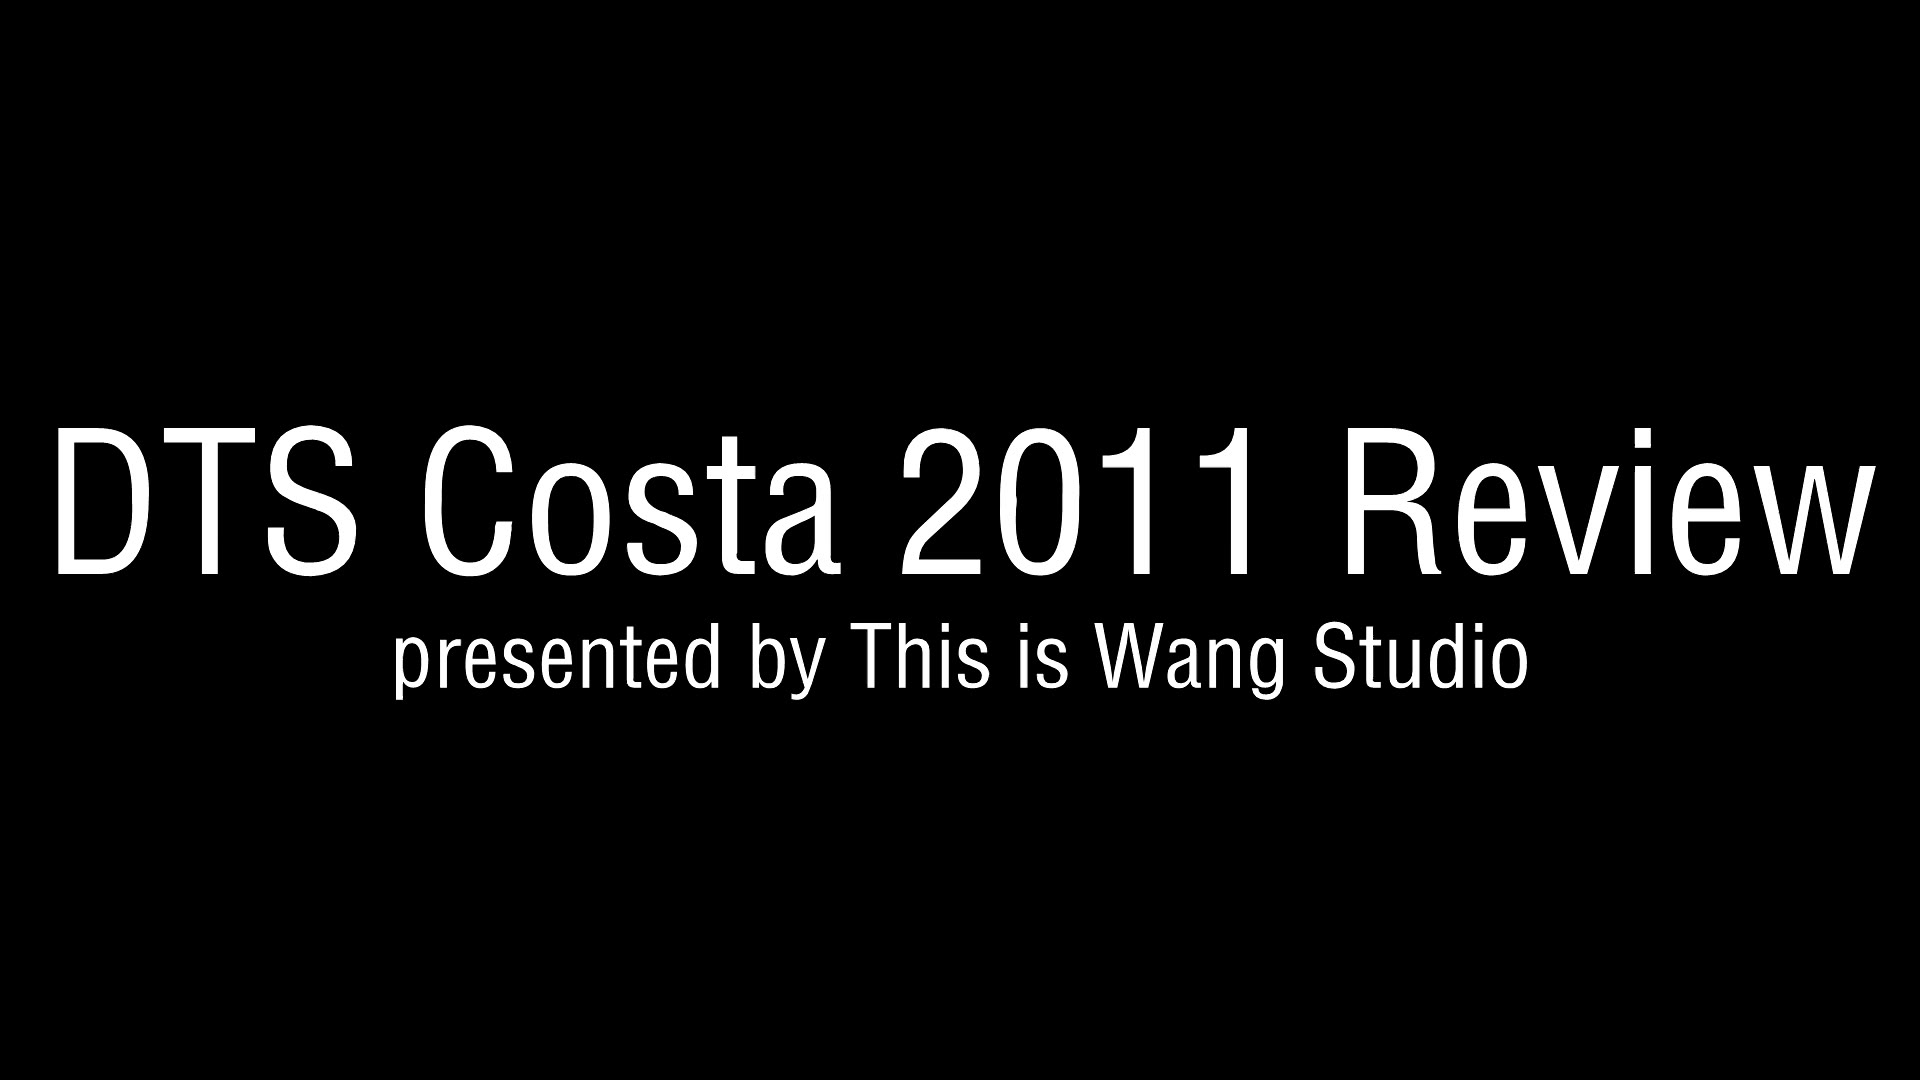 D.T.S Costa 2011 Review